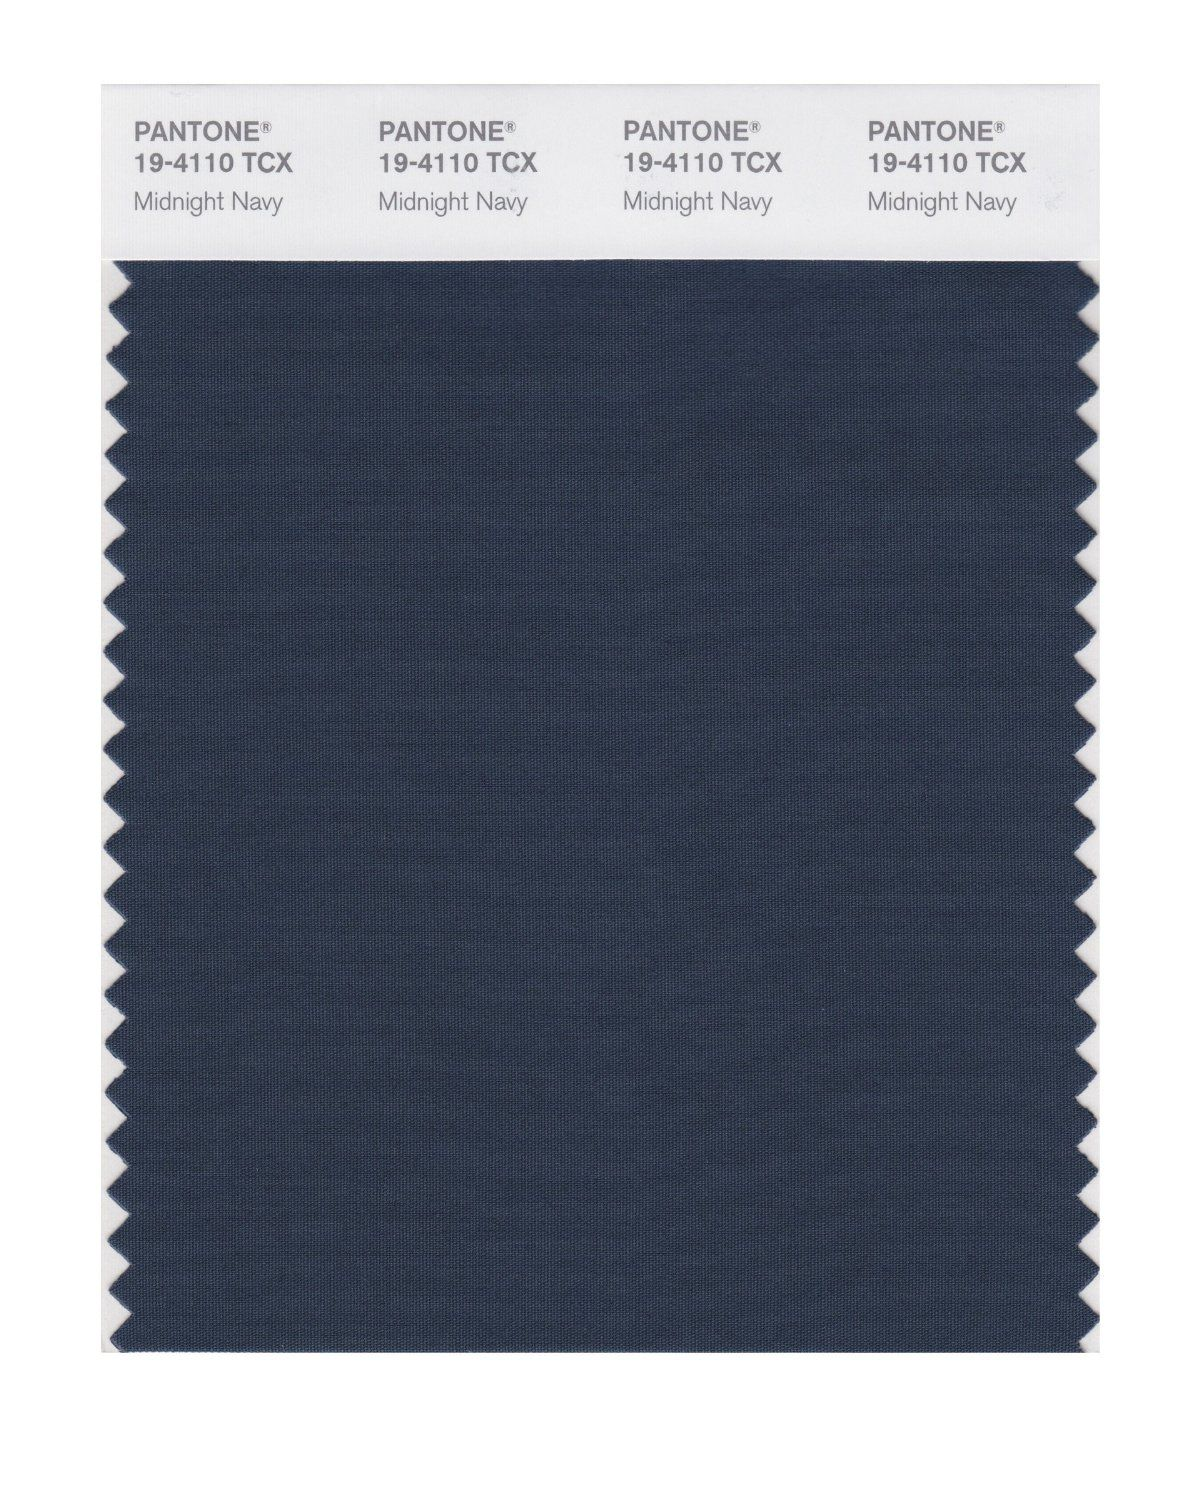 True Blue Paint Color Pantone Smart 19 4110x Color Swatch Card Midnight Navy House